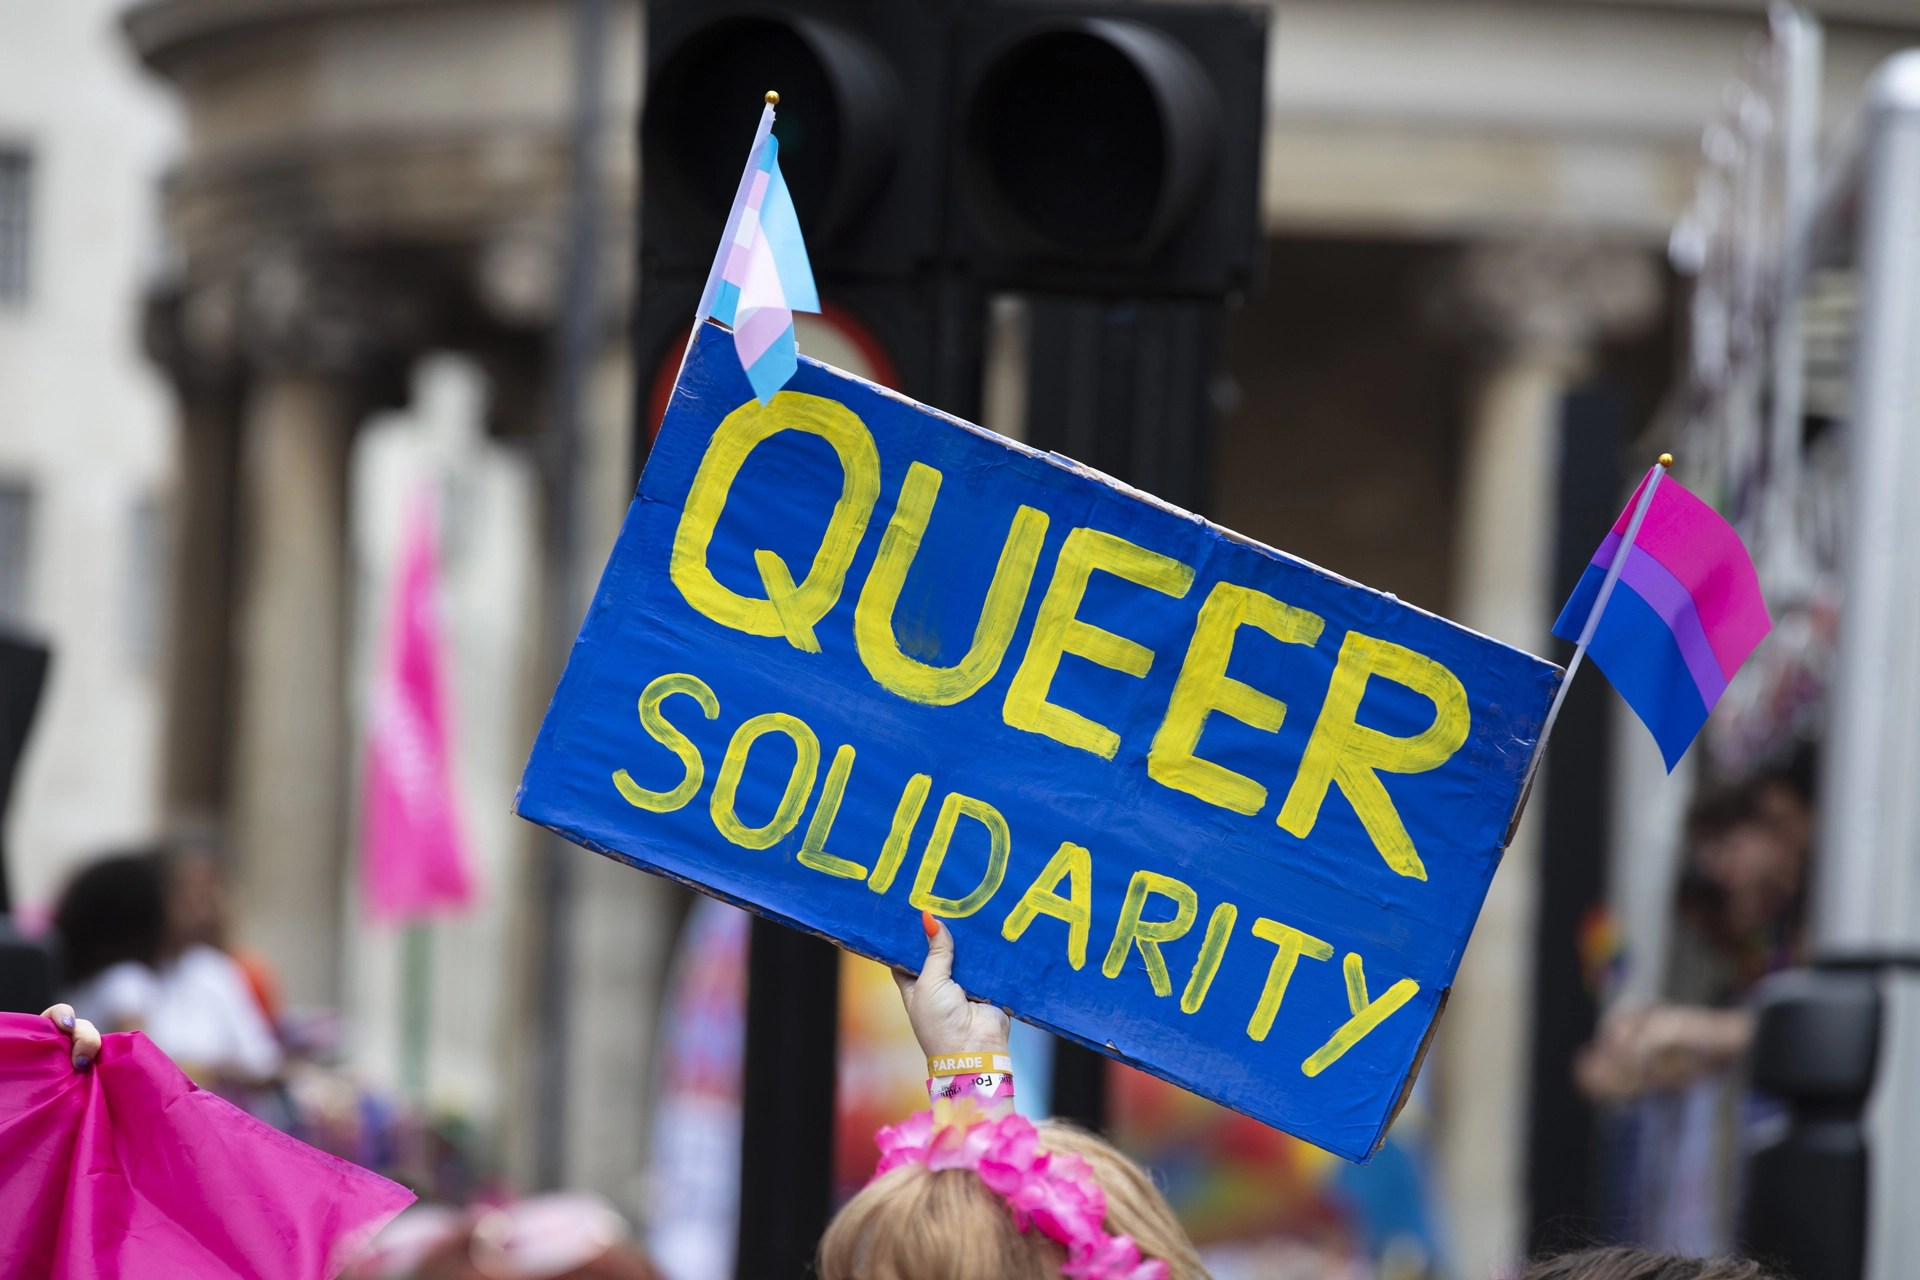 Supporting Queer Solidarity at a Pride Event